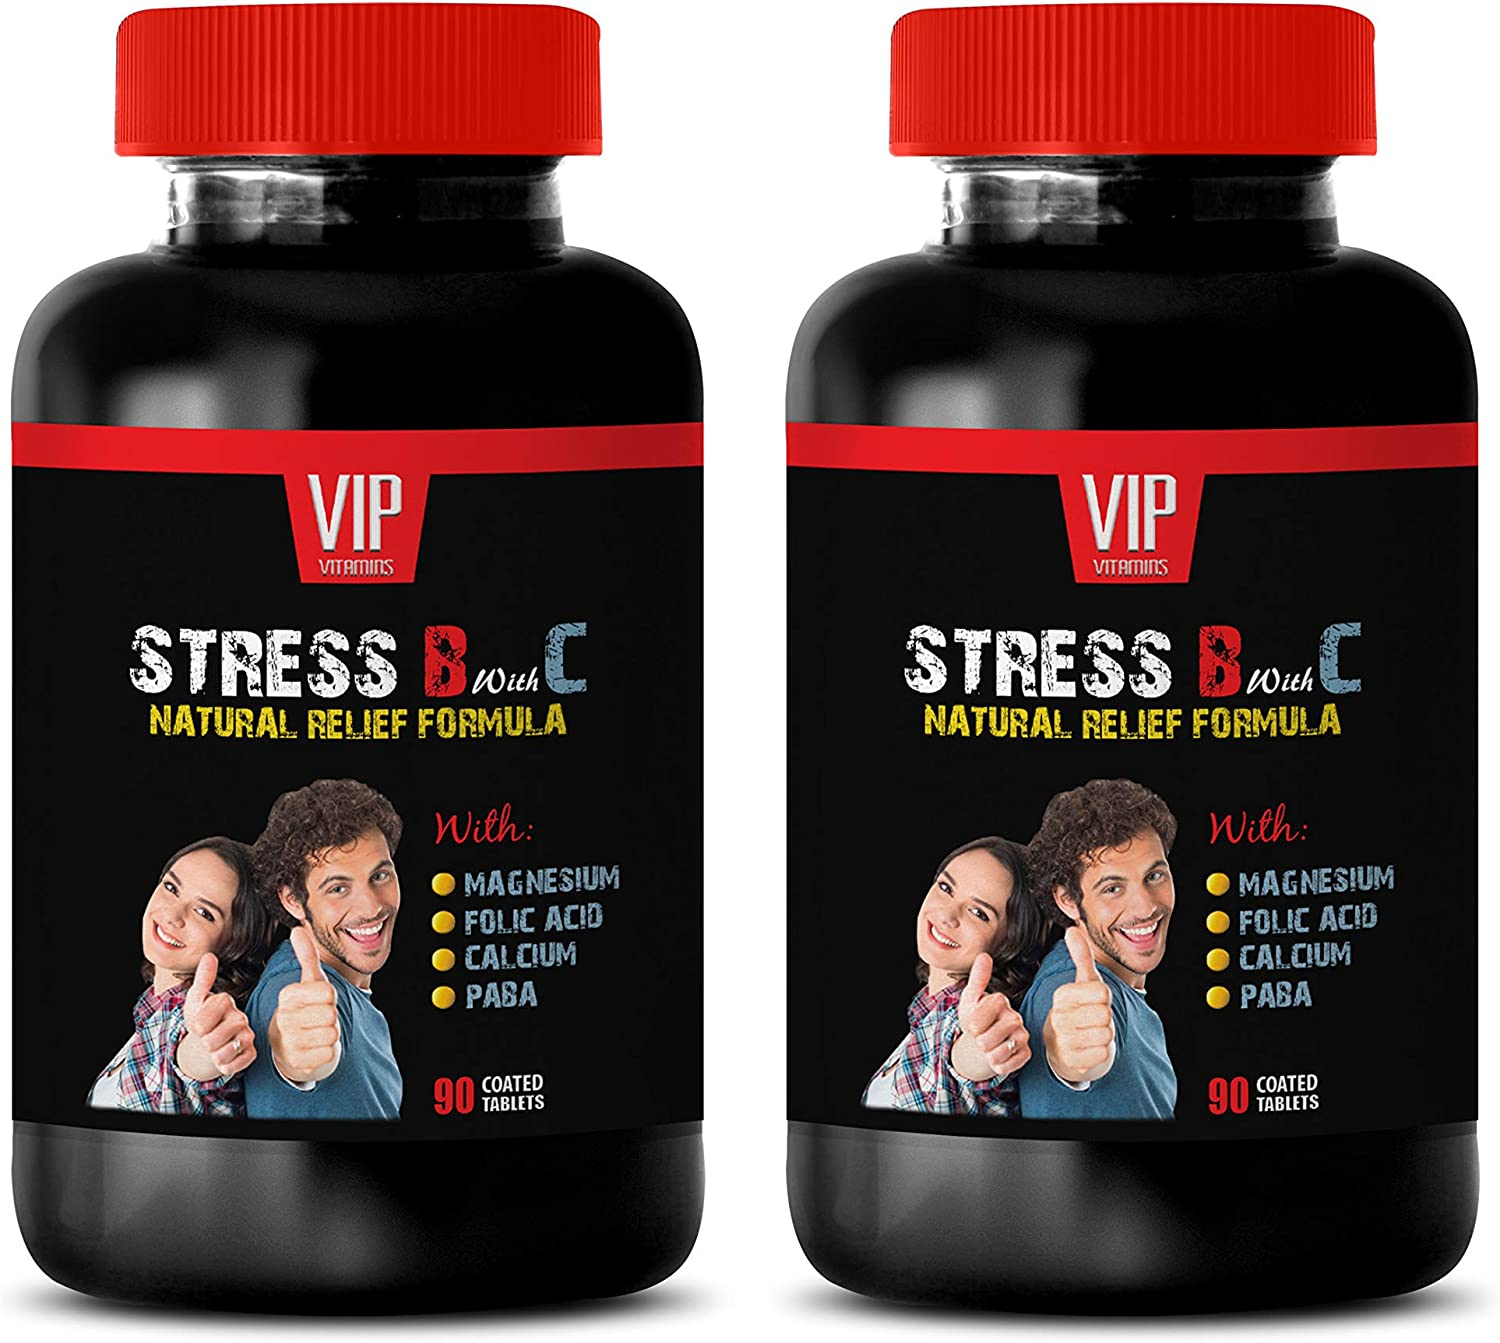 Stress Vitamins for Women - Stress B with C Natural Relief Formula for Adults - Mood Support - Anxiety Relief - Passion Flower Capsules - 2 Bottles (180 Tabs)